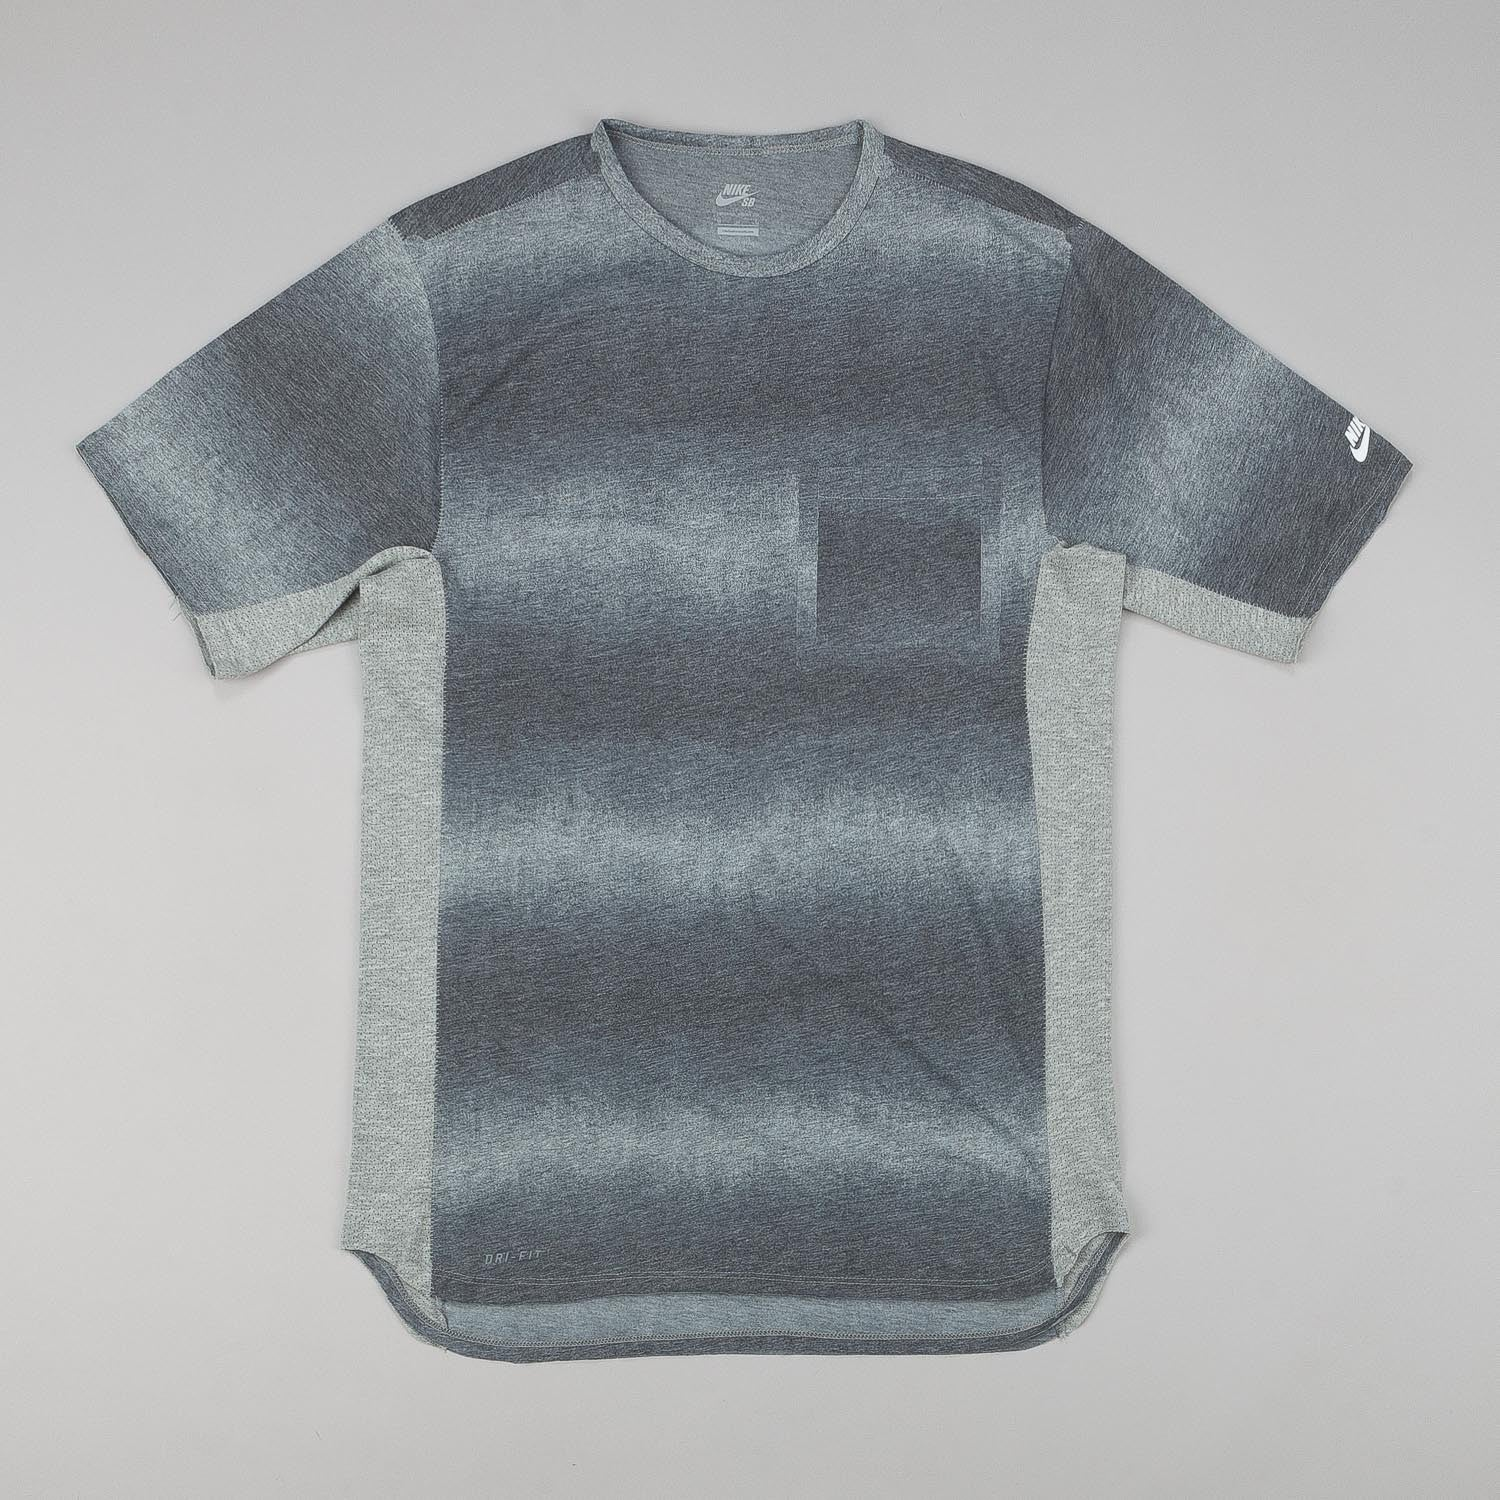 Nike SB Skyline DFC Dip Fade Short Sleeve Pocket T-Shirt - Grey